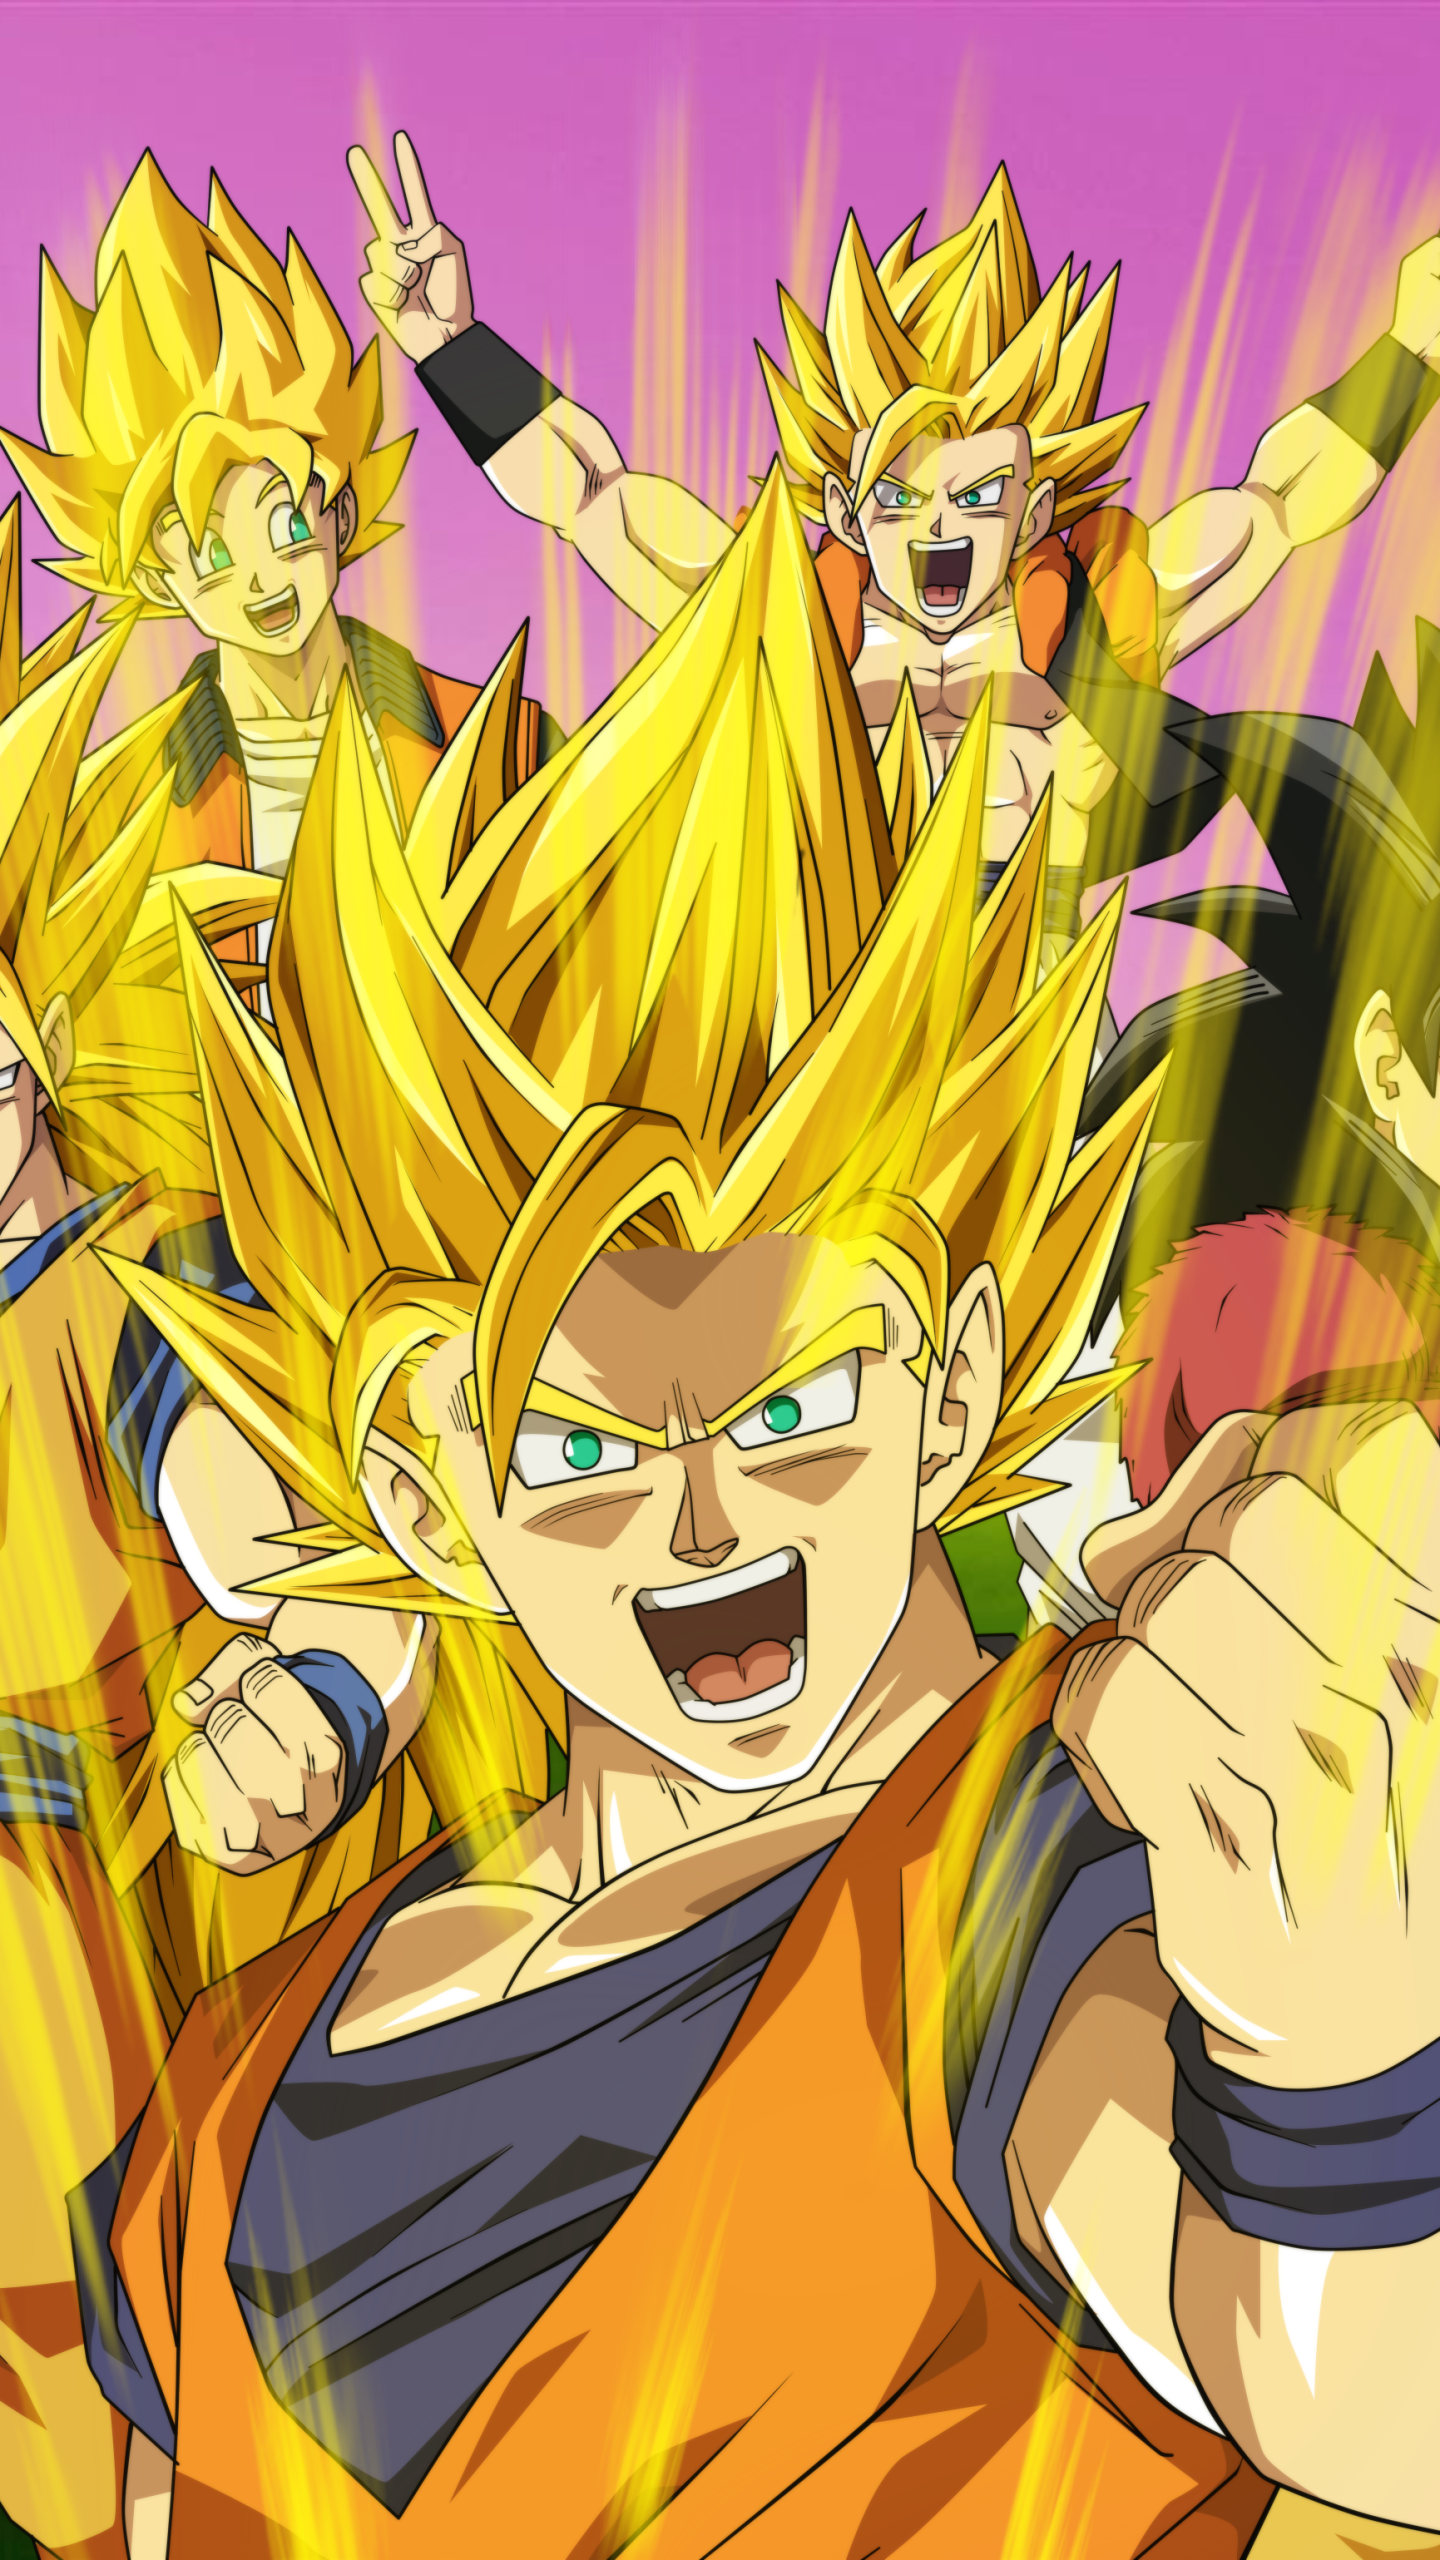 iPhone 6 - Anime/Dragon Ball Z - Wallpaper ID: 588568